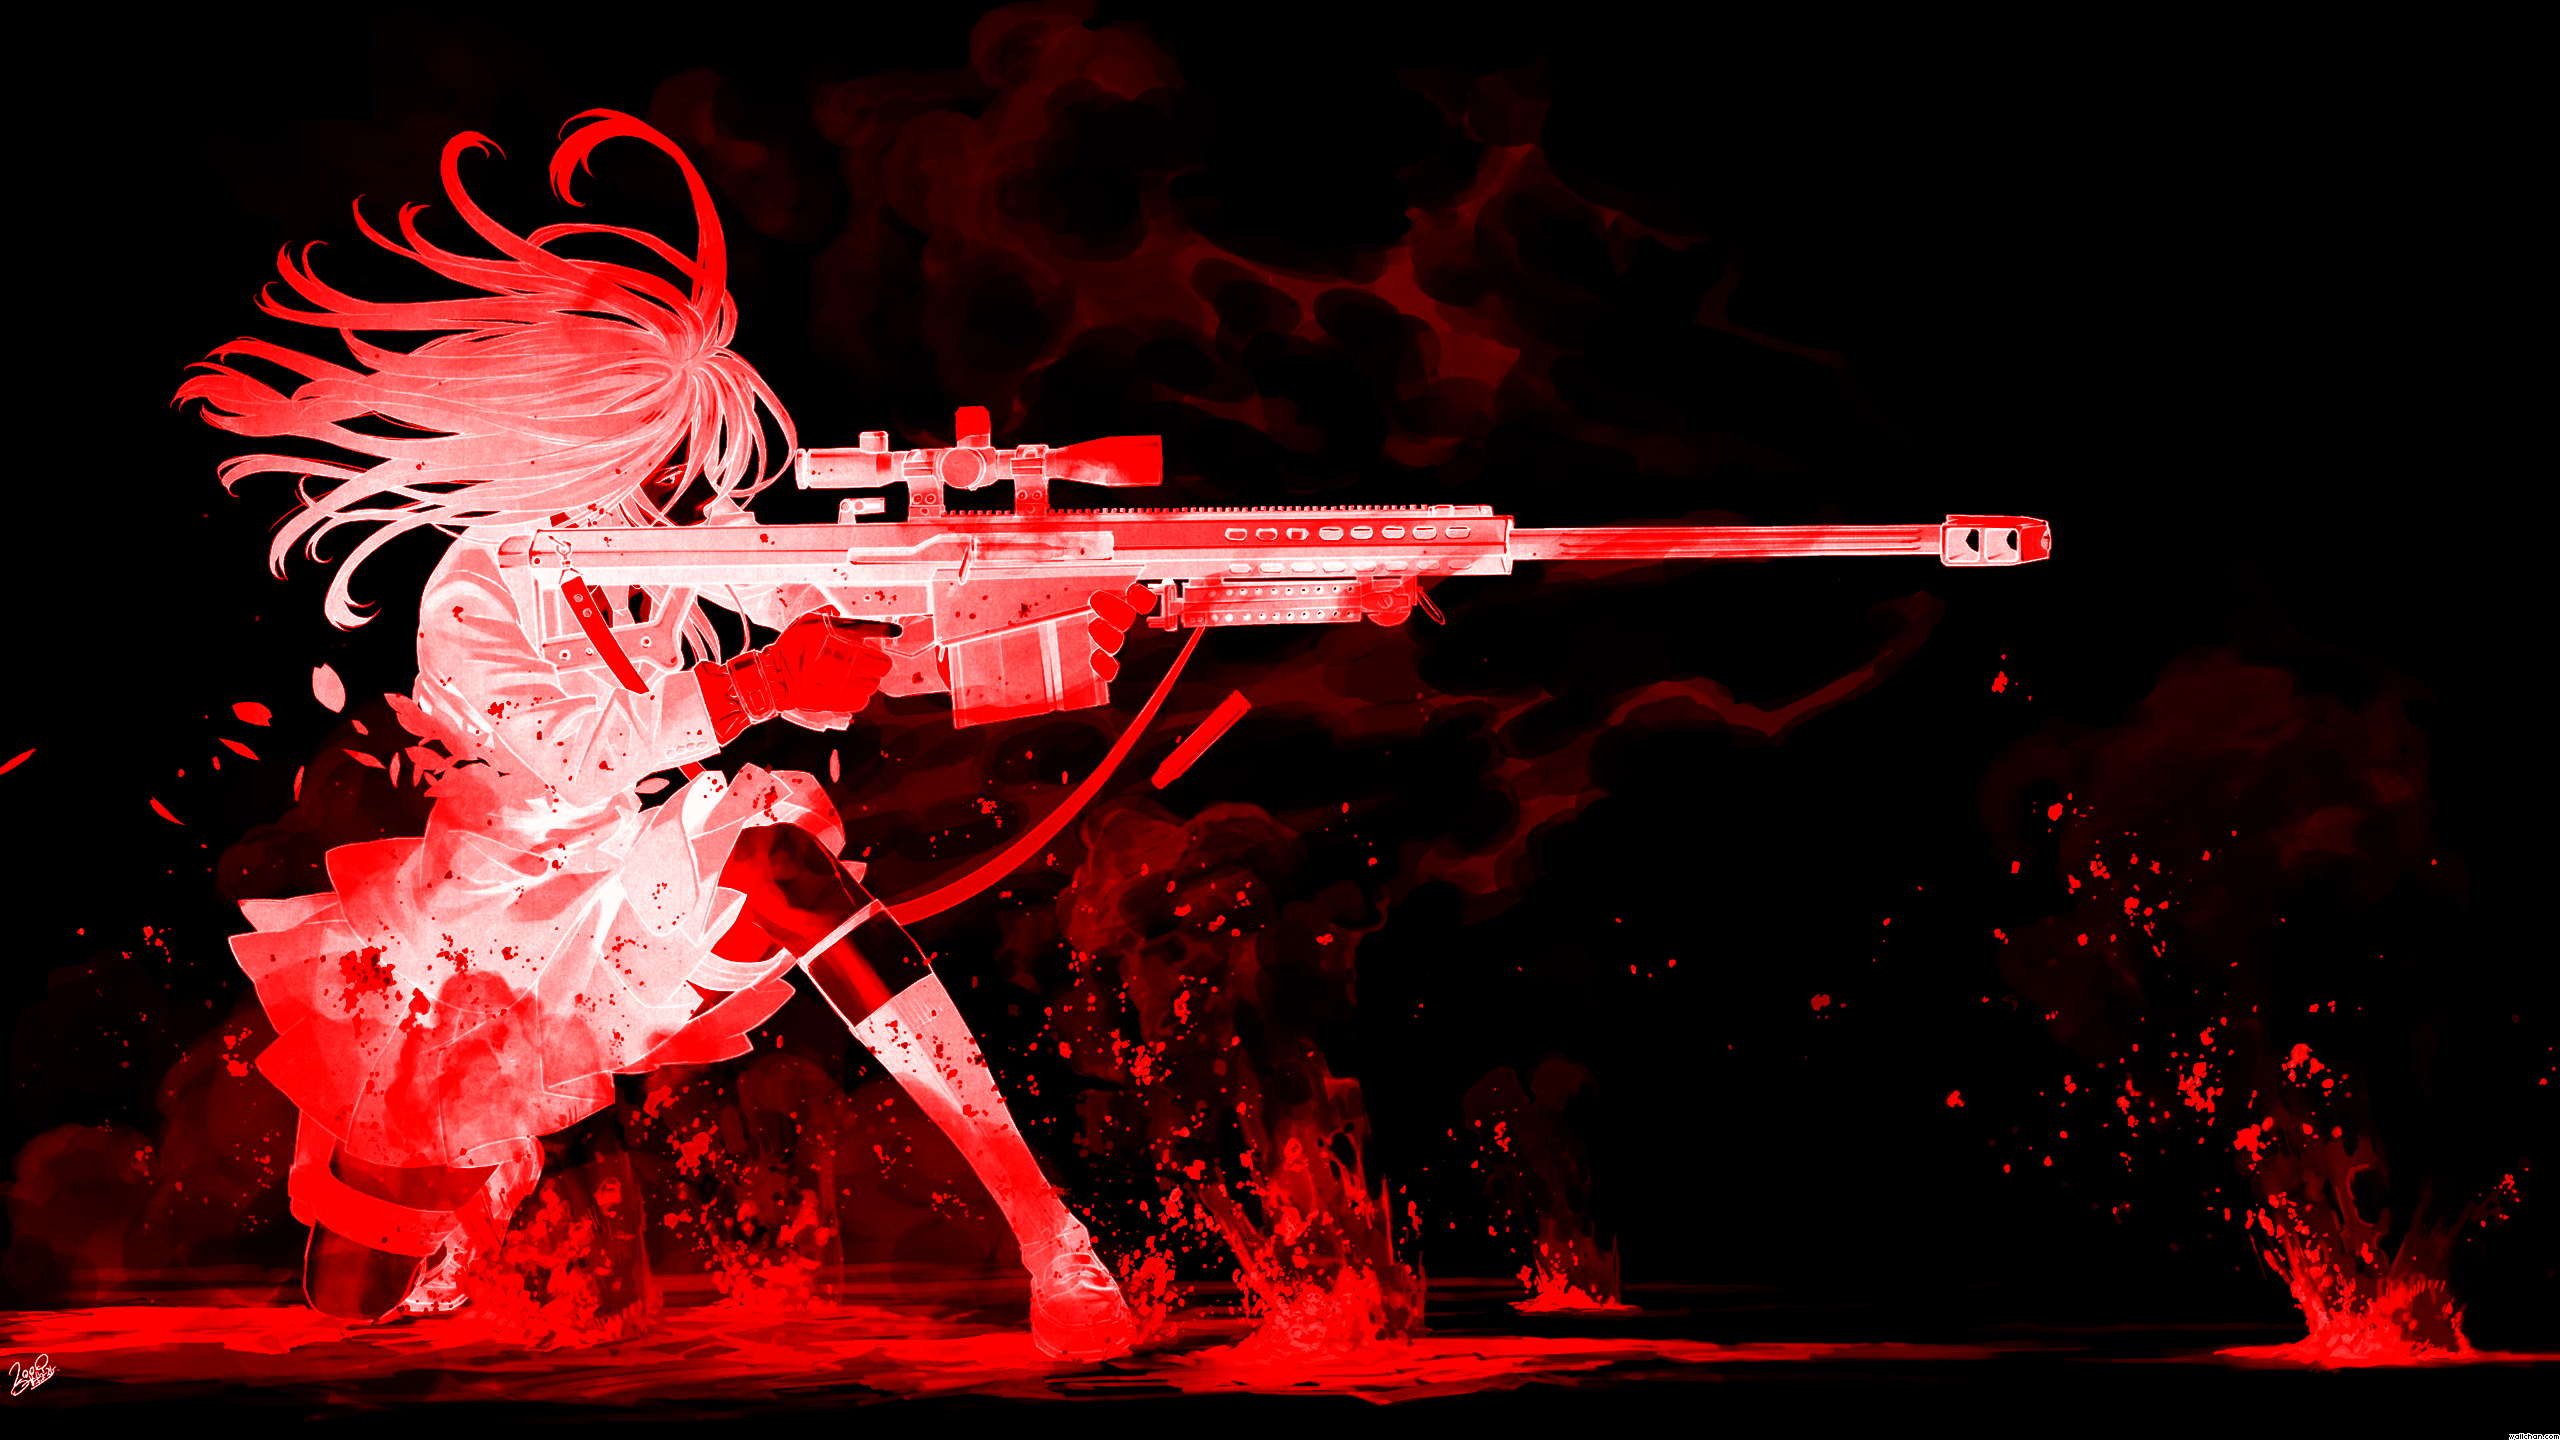 Snipers Anime 25601440 Wallpaper 2190142 2560x1440